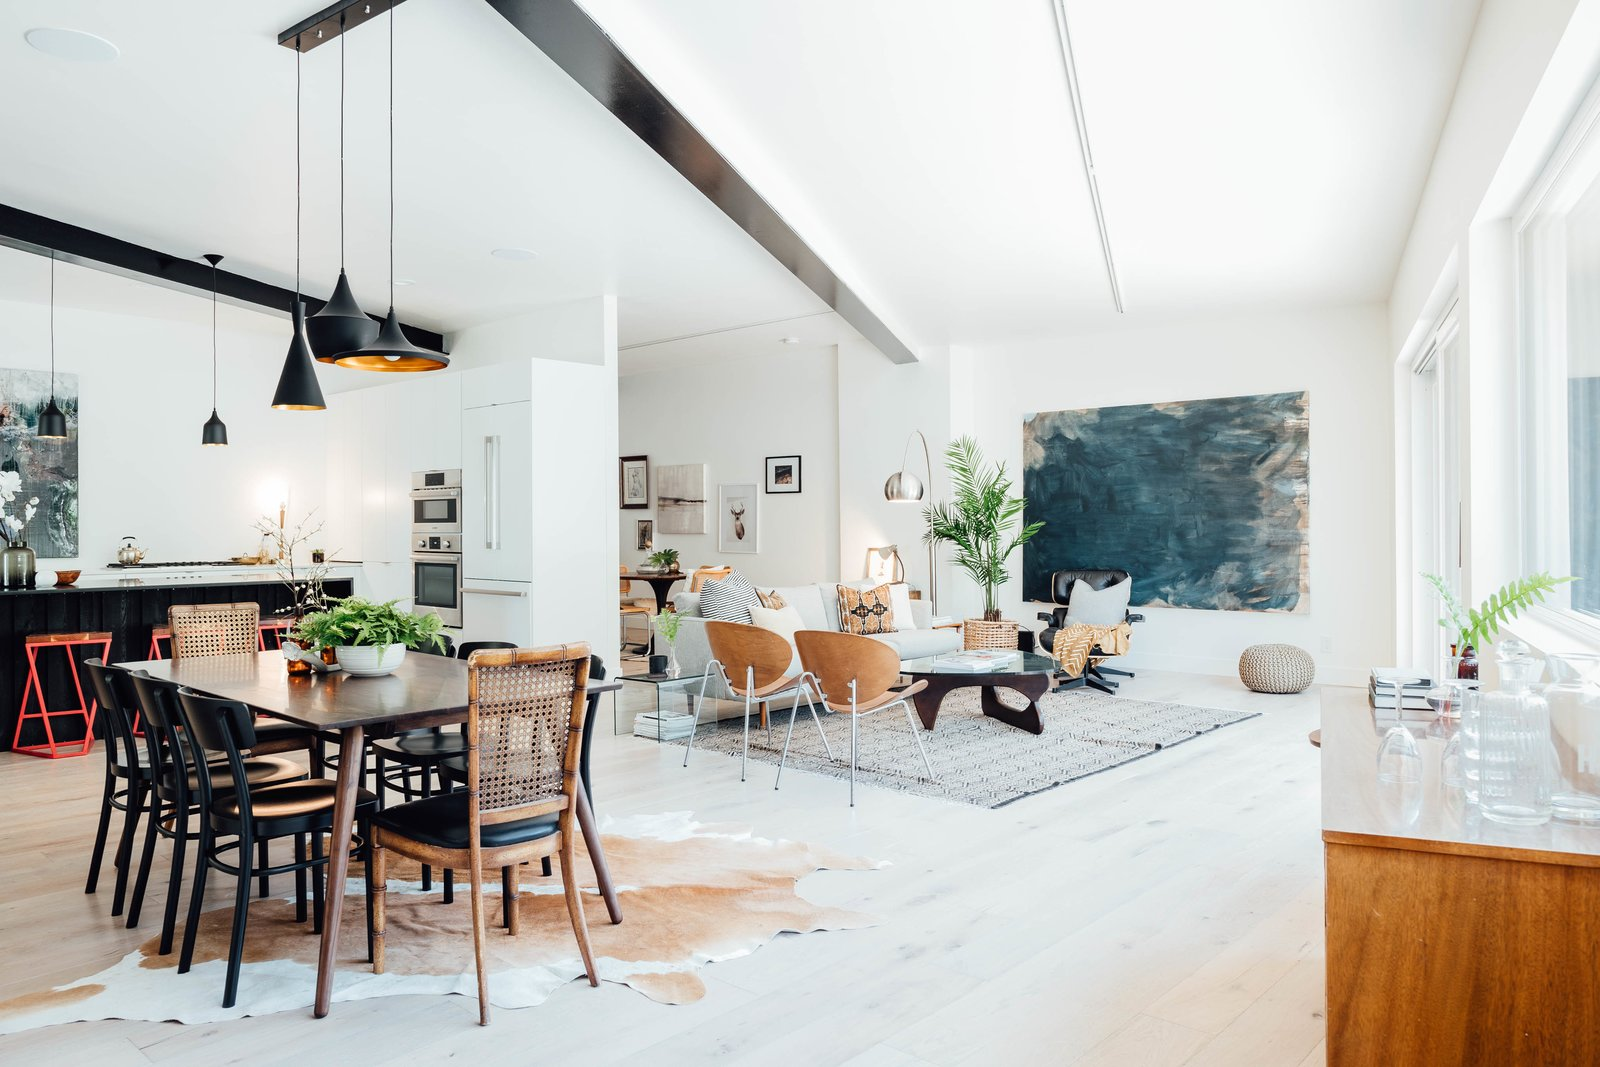 Living Room, Sofa, Ceiling Lighting, Chair, Rug Floor, Stools, Table, Coffee Tables, Pendant Lighting, Light Hardwood Floor, and Recessed Lighting The open-plan layout is a fitting setting to embrace a minimalist, Scandinavian-inspired aesthetic.     Best Photos from This Passive House in Park City Just Hit the Market For $1.1M